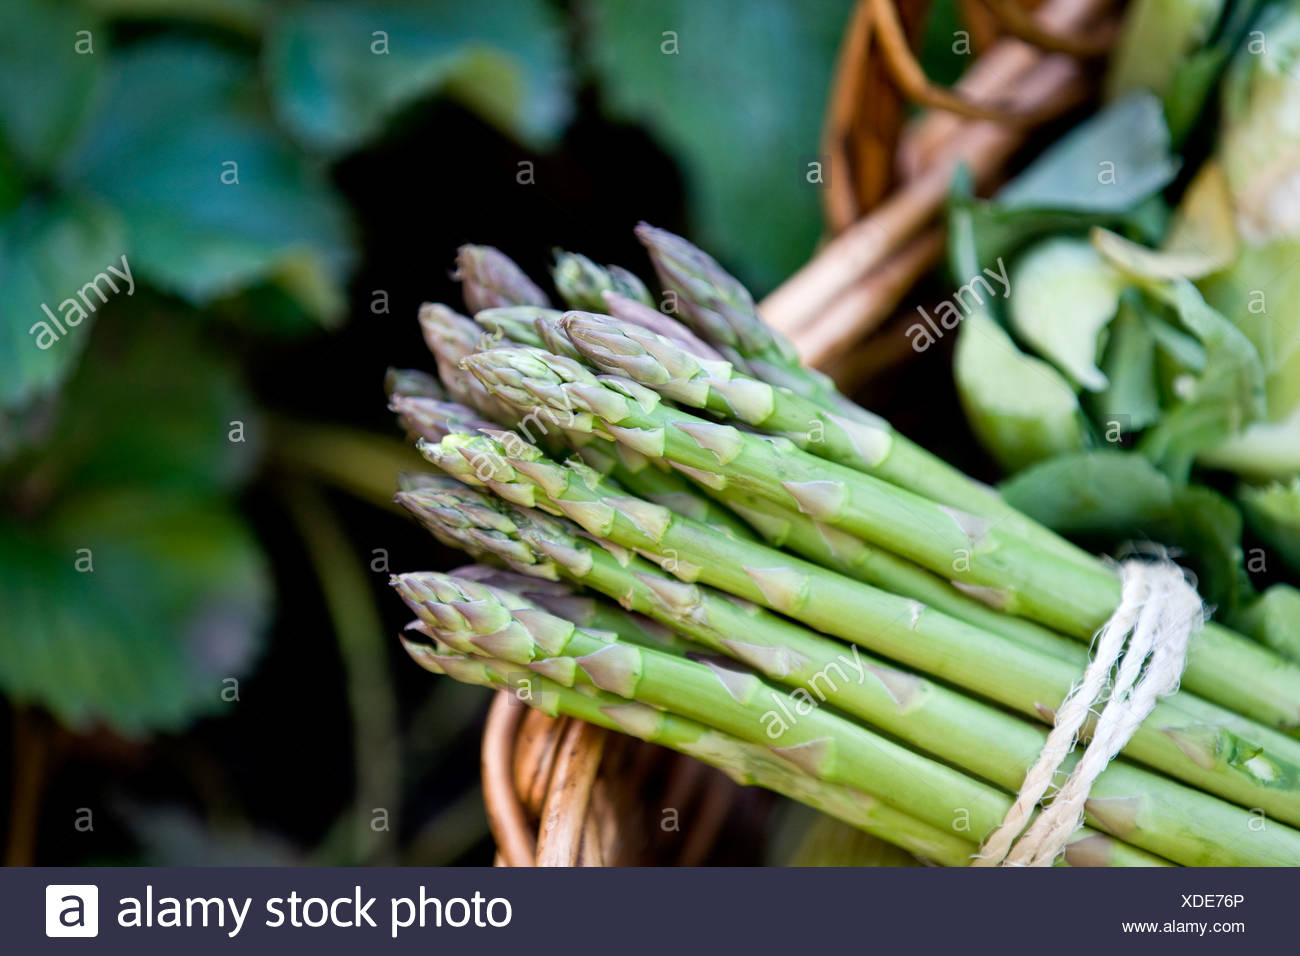 A bunch of asparagus in a basket of fresh vegetables - Stock Image